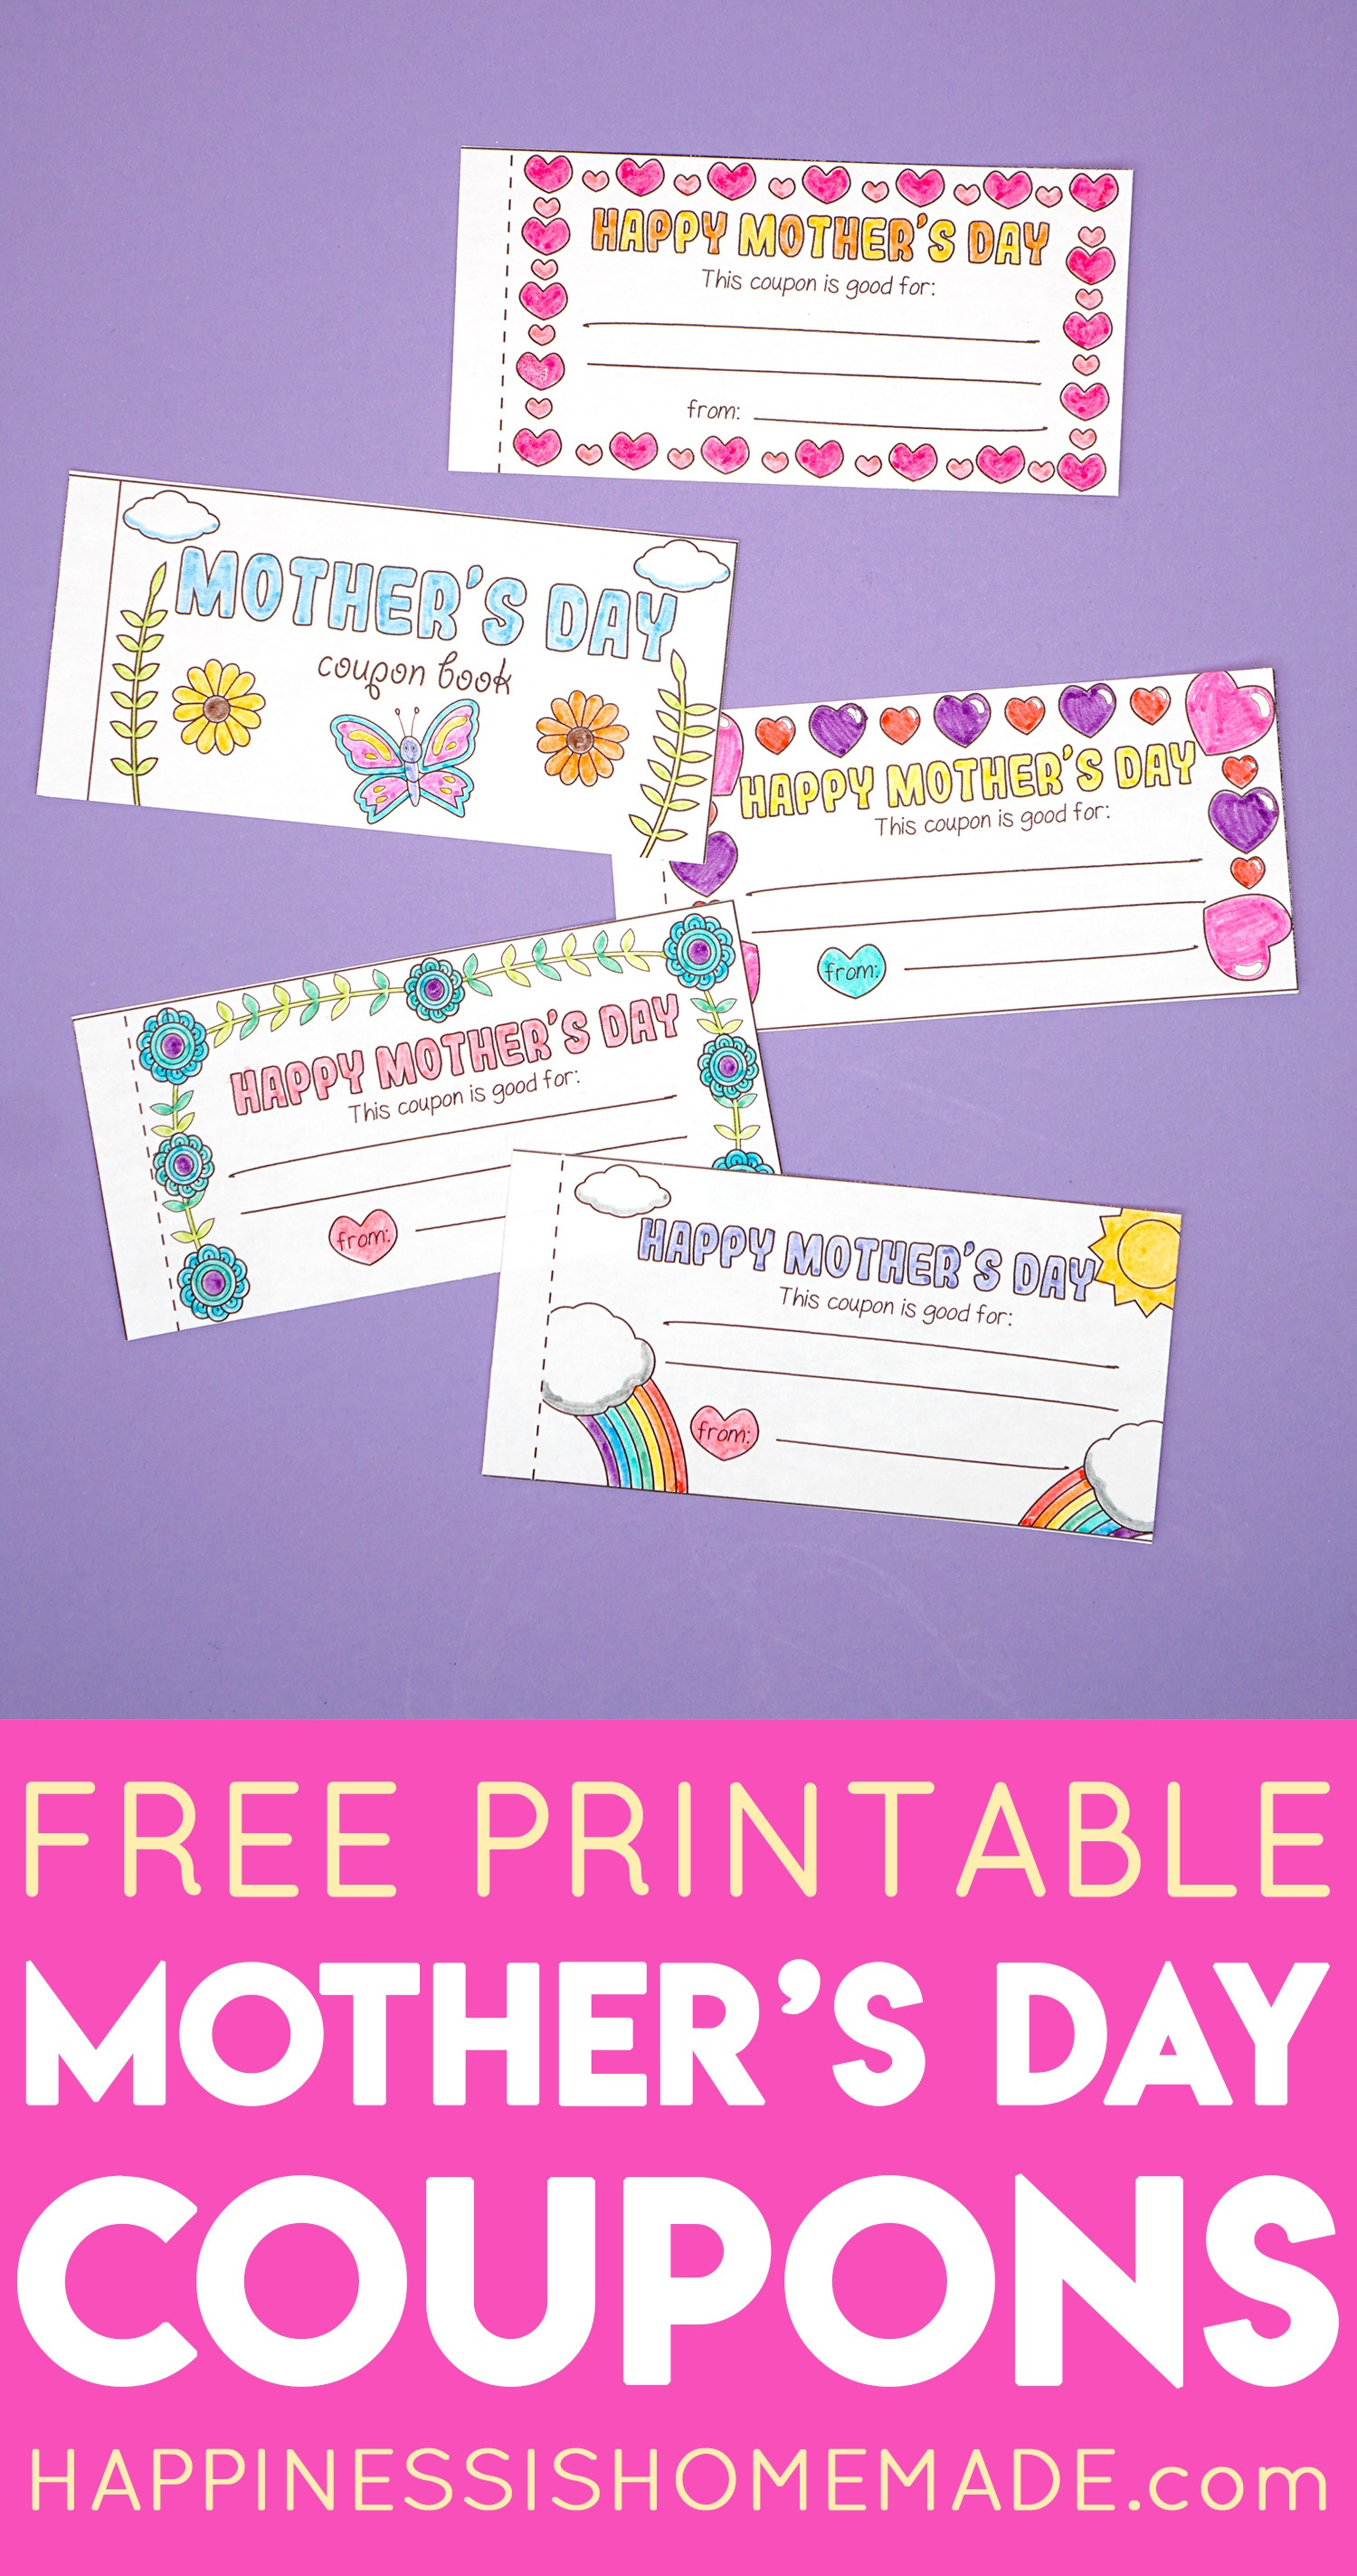 Free Printable Mother's Day Coupons - Happiness Is Homemade - Free Printable Homemade Coupon Book